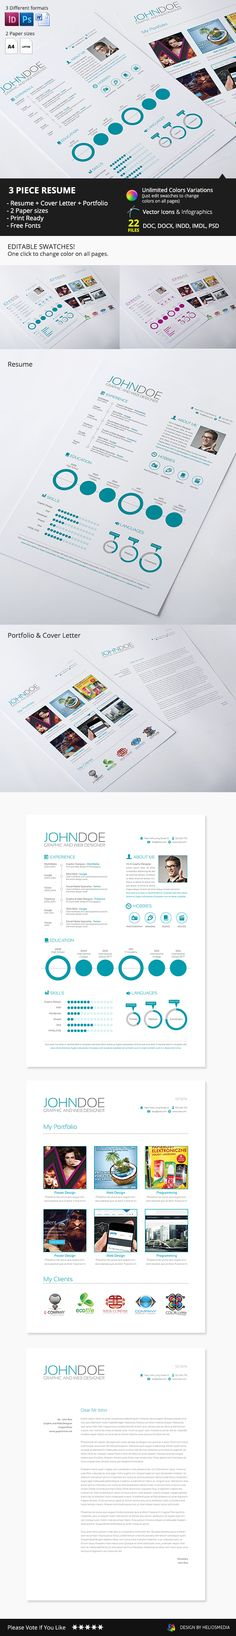 Modern Resume by Rafał Kozera, via Behance ㅡ 디자이너의 이력서 :) Resume Design Template, Cv Template, Resume Templates, Design Typo, Cv Design, Graphic Design, Modern Design, Cover Letter For Resume, Visual Identity